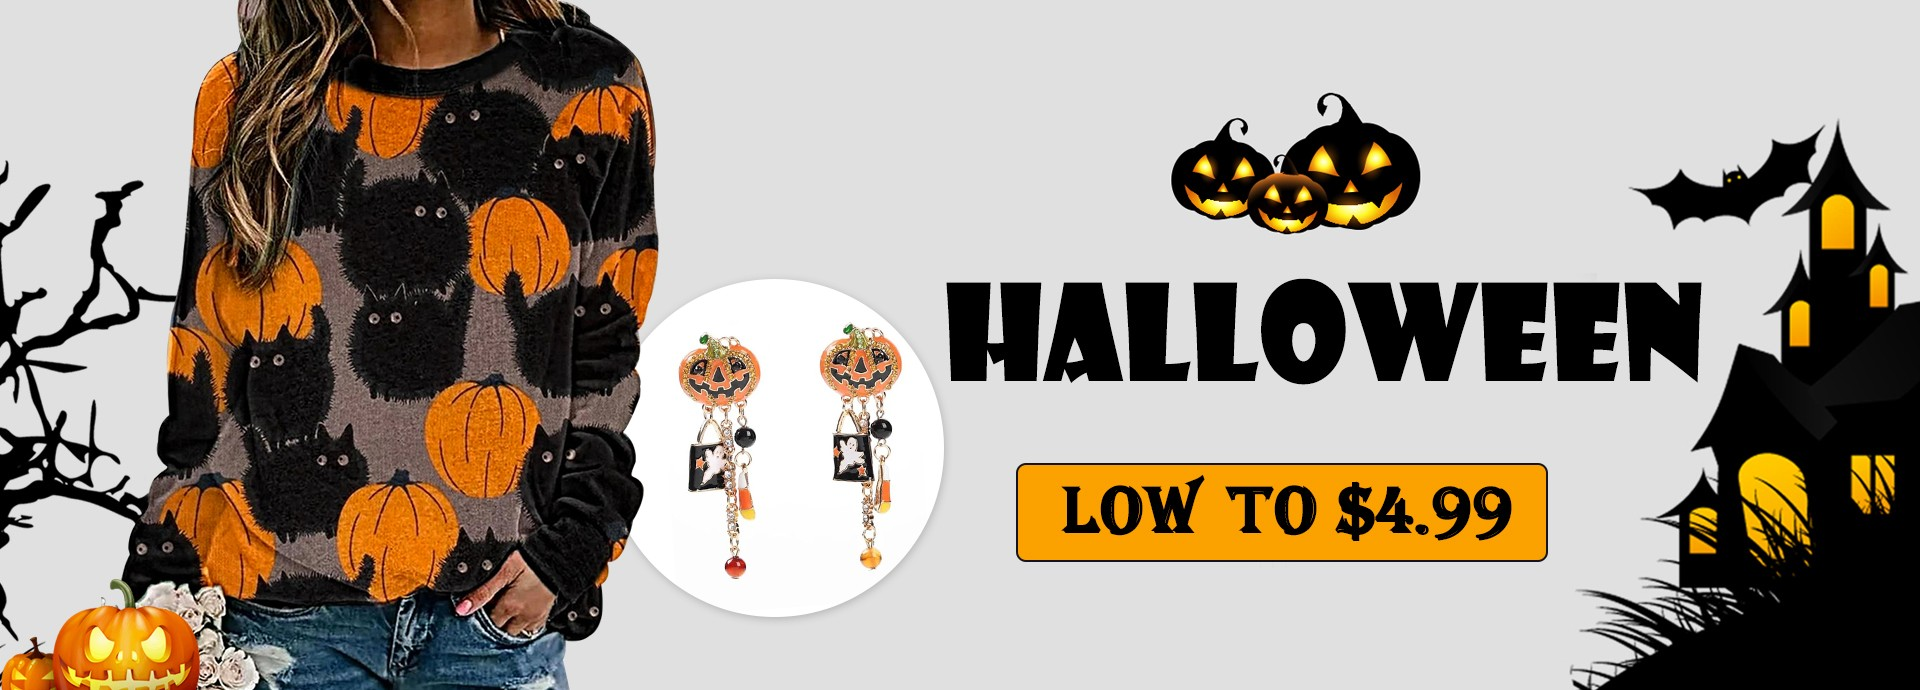 HALLOWEEN  LOW TO $4.99